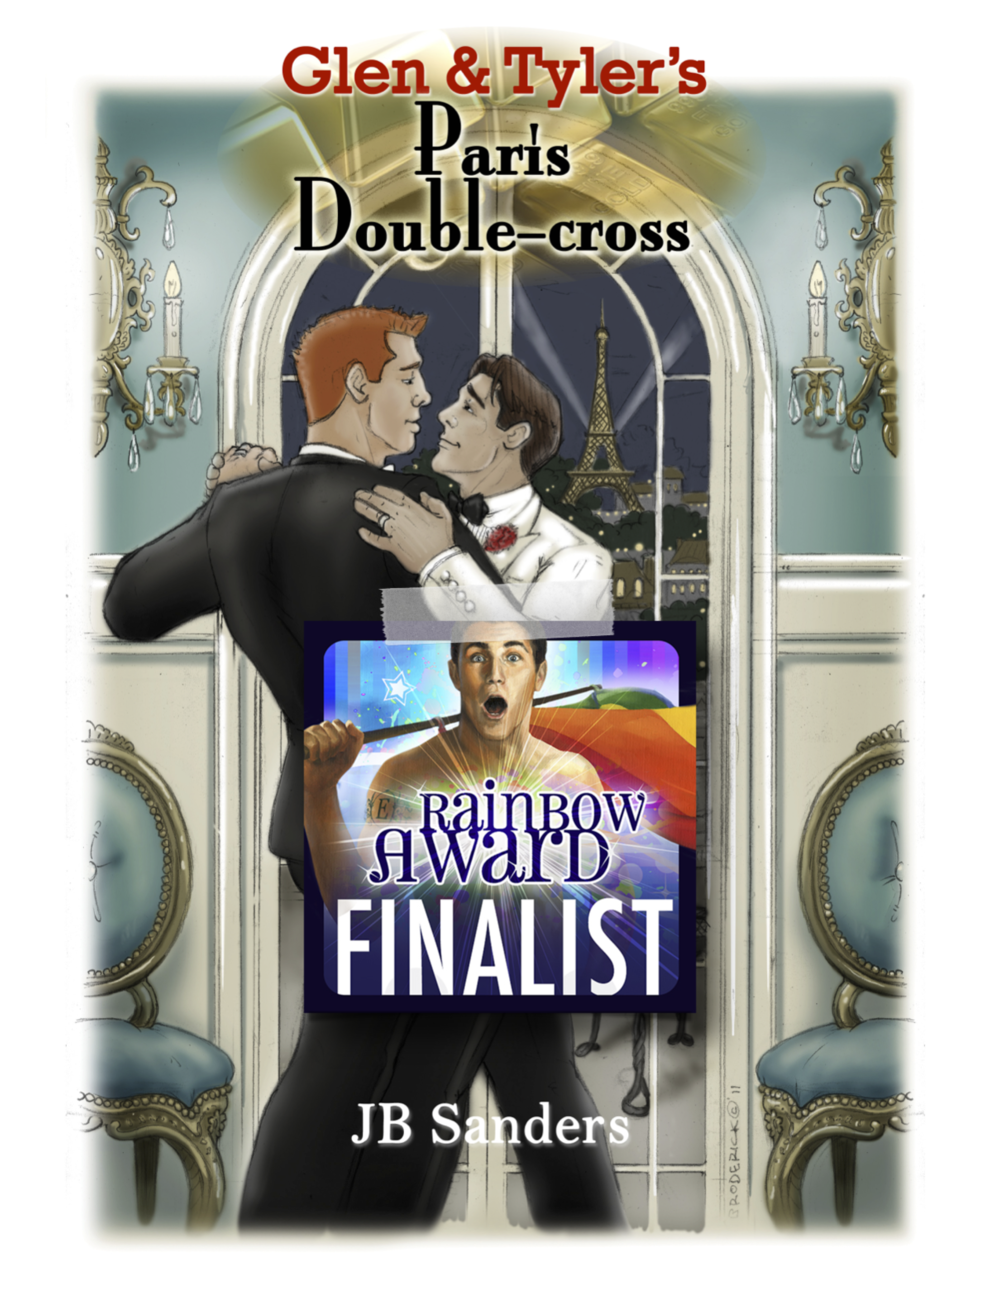 Glen & Tyler's Paris Double-cross was a Finalist in the Rainbow Awards for 2013.